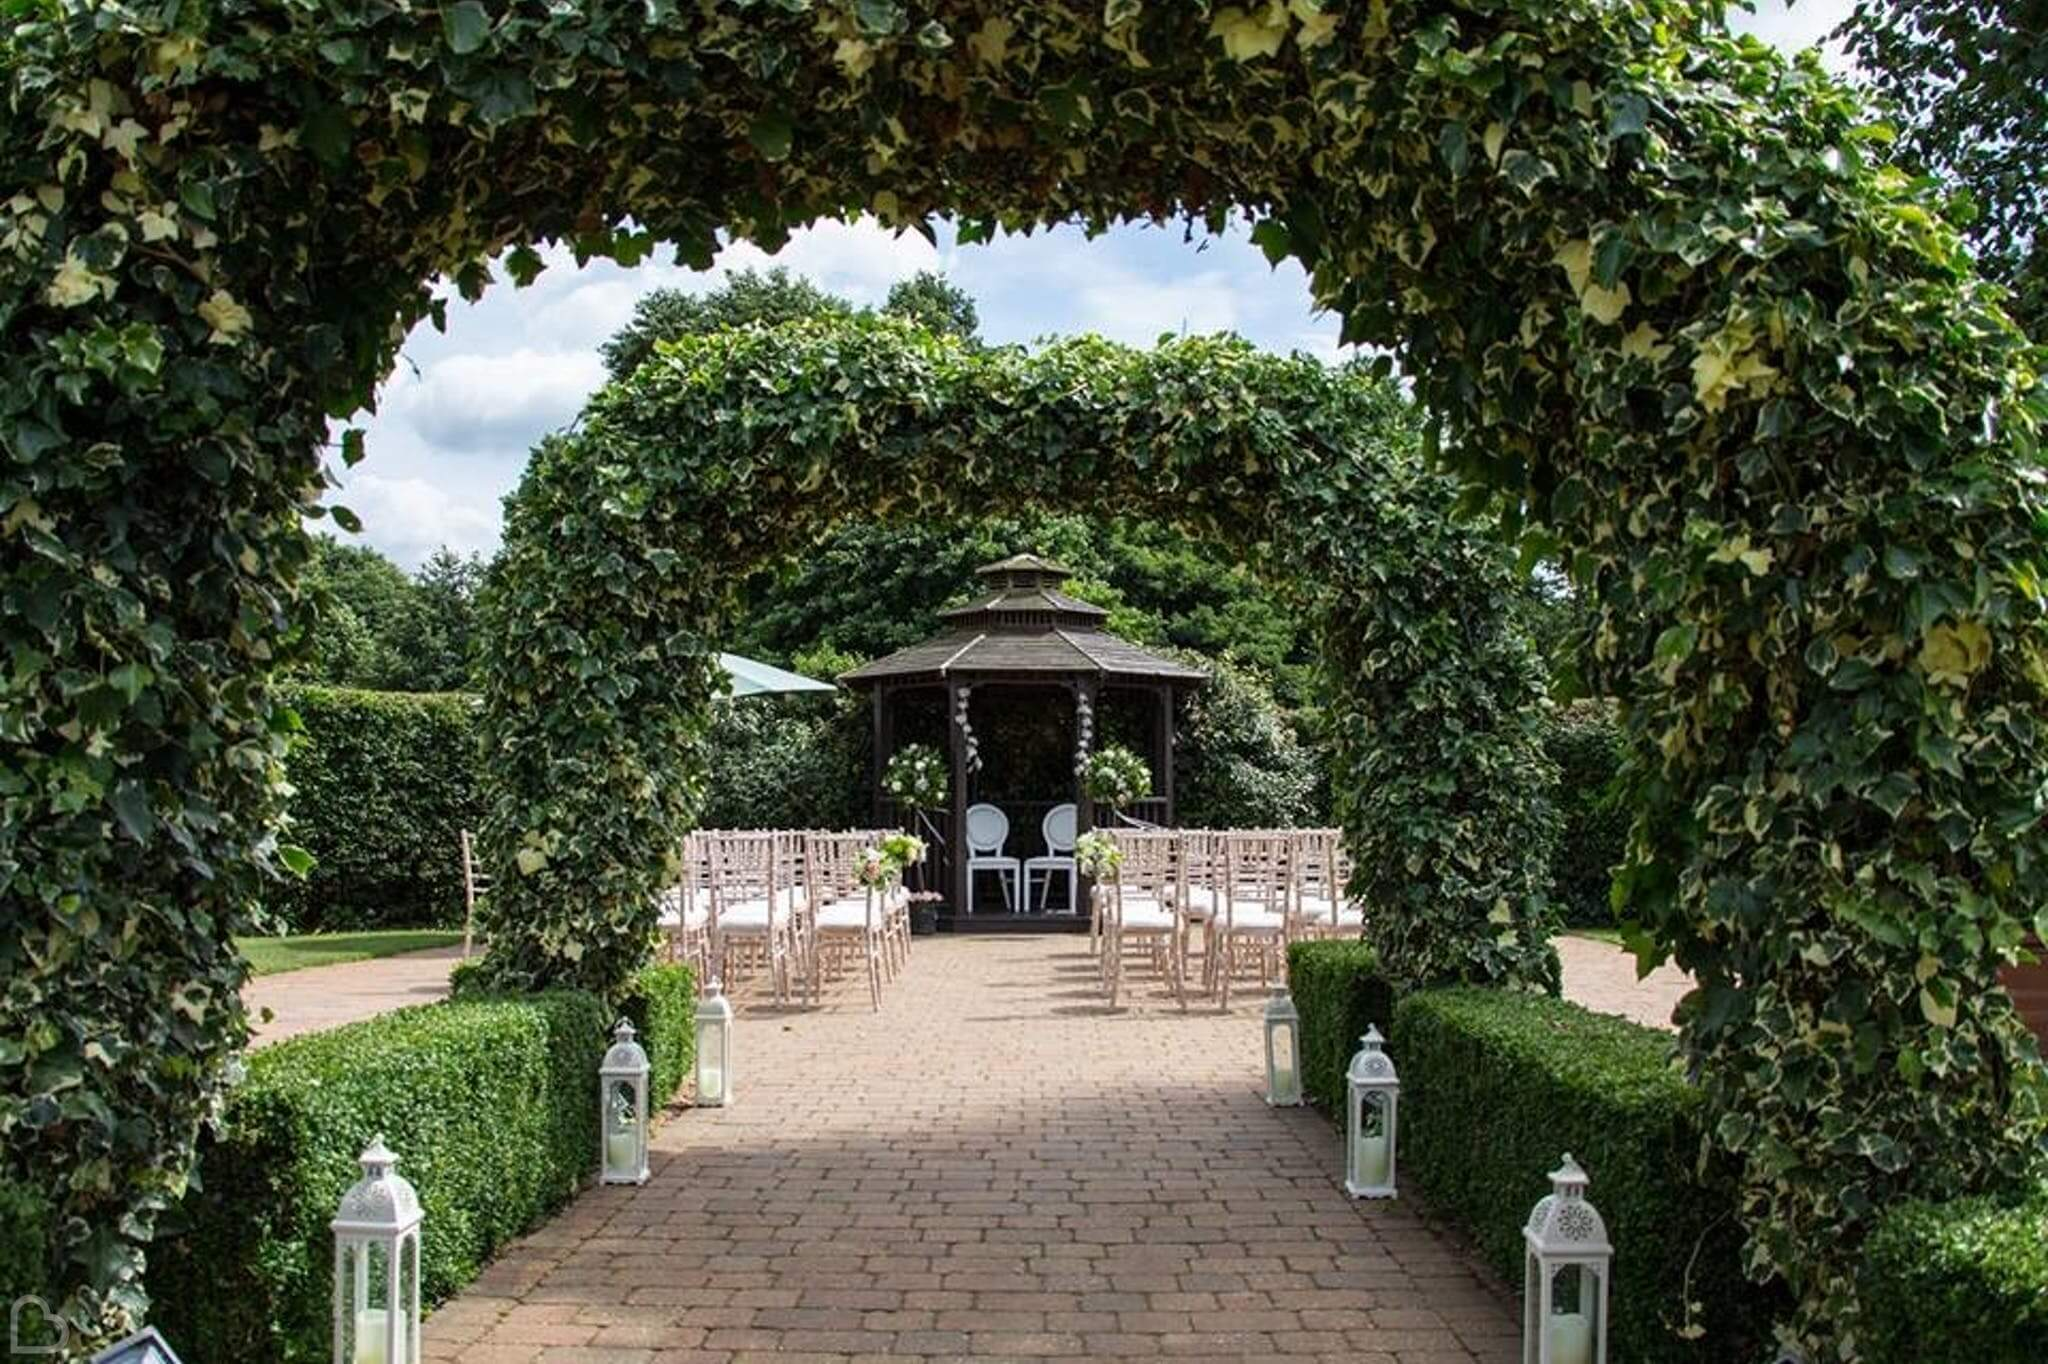 tewin bury farm hotel with green arches set up for wedding ceremony